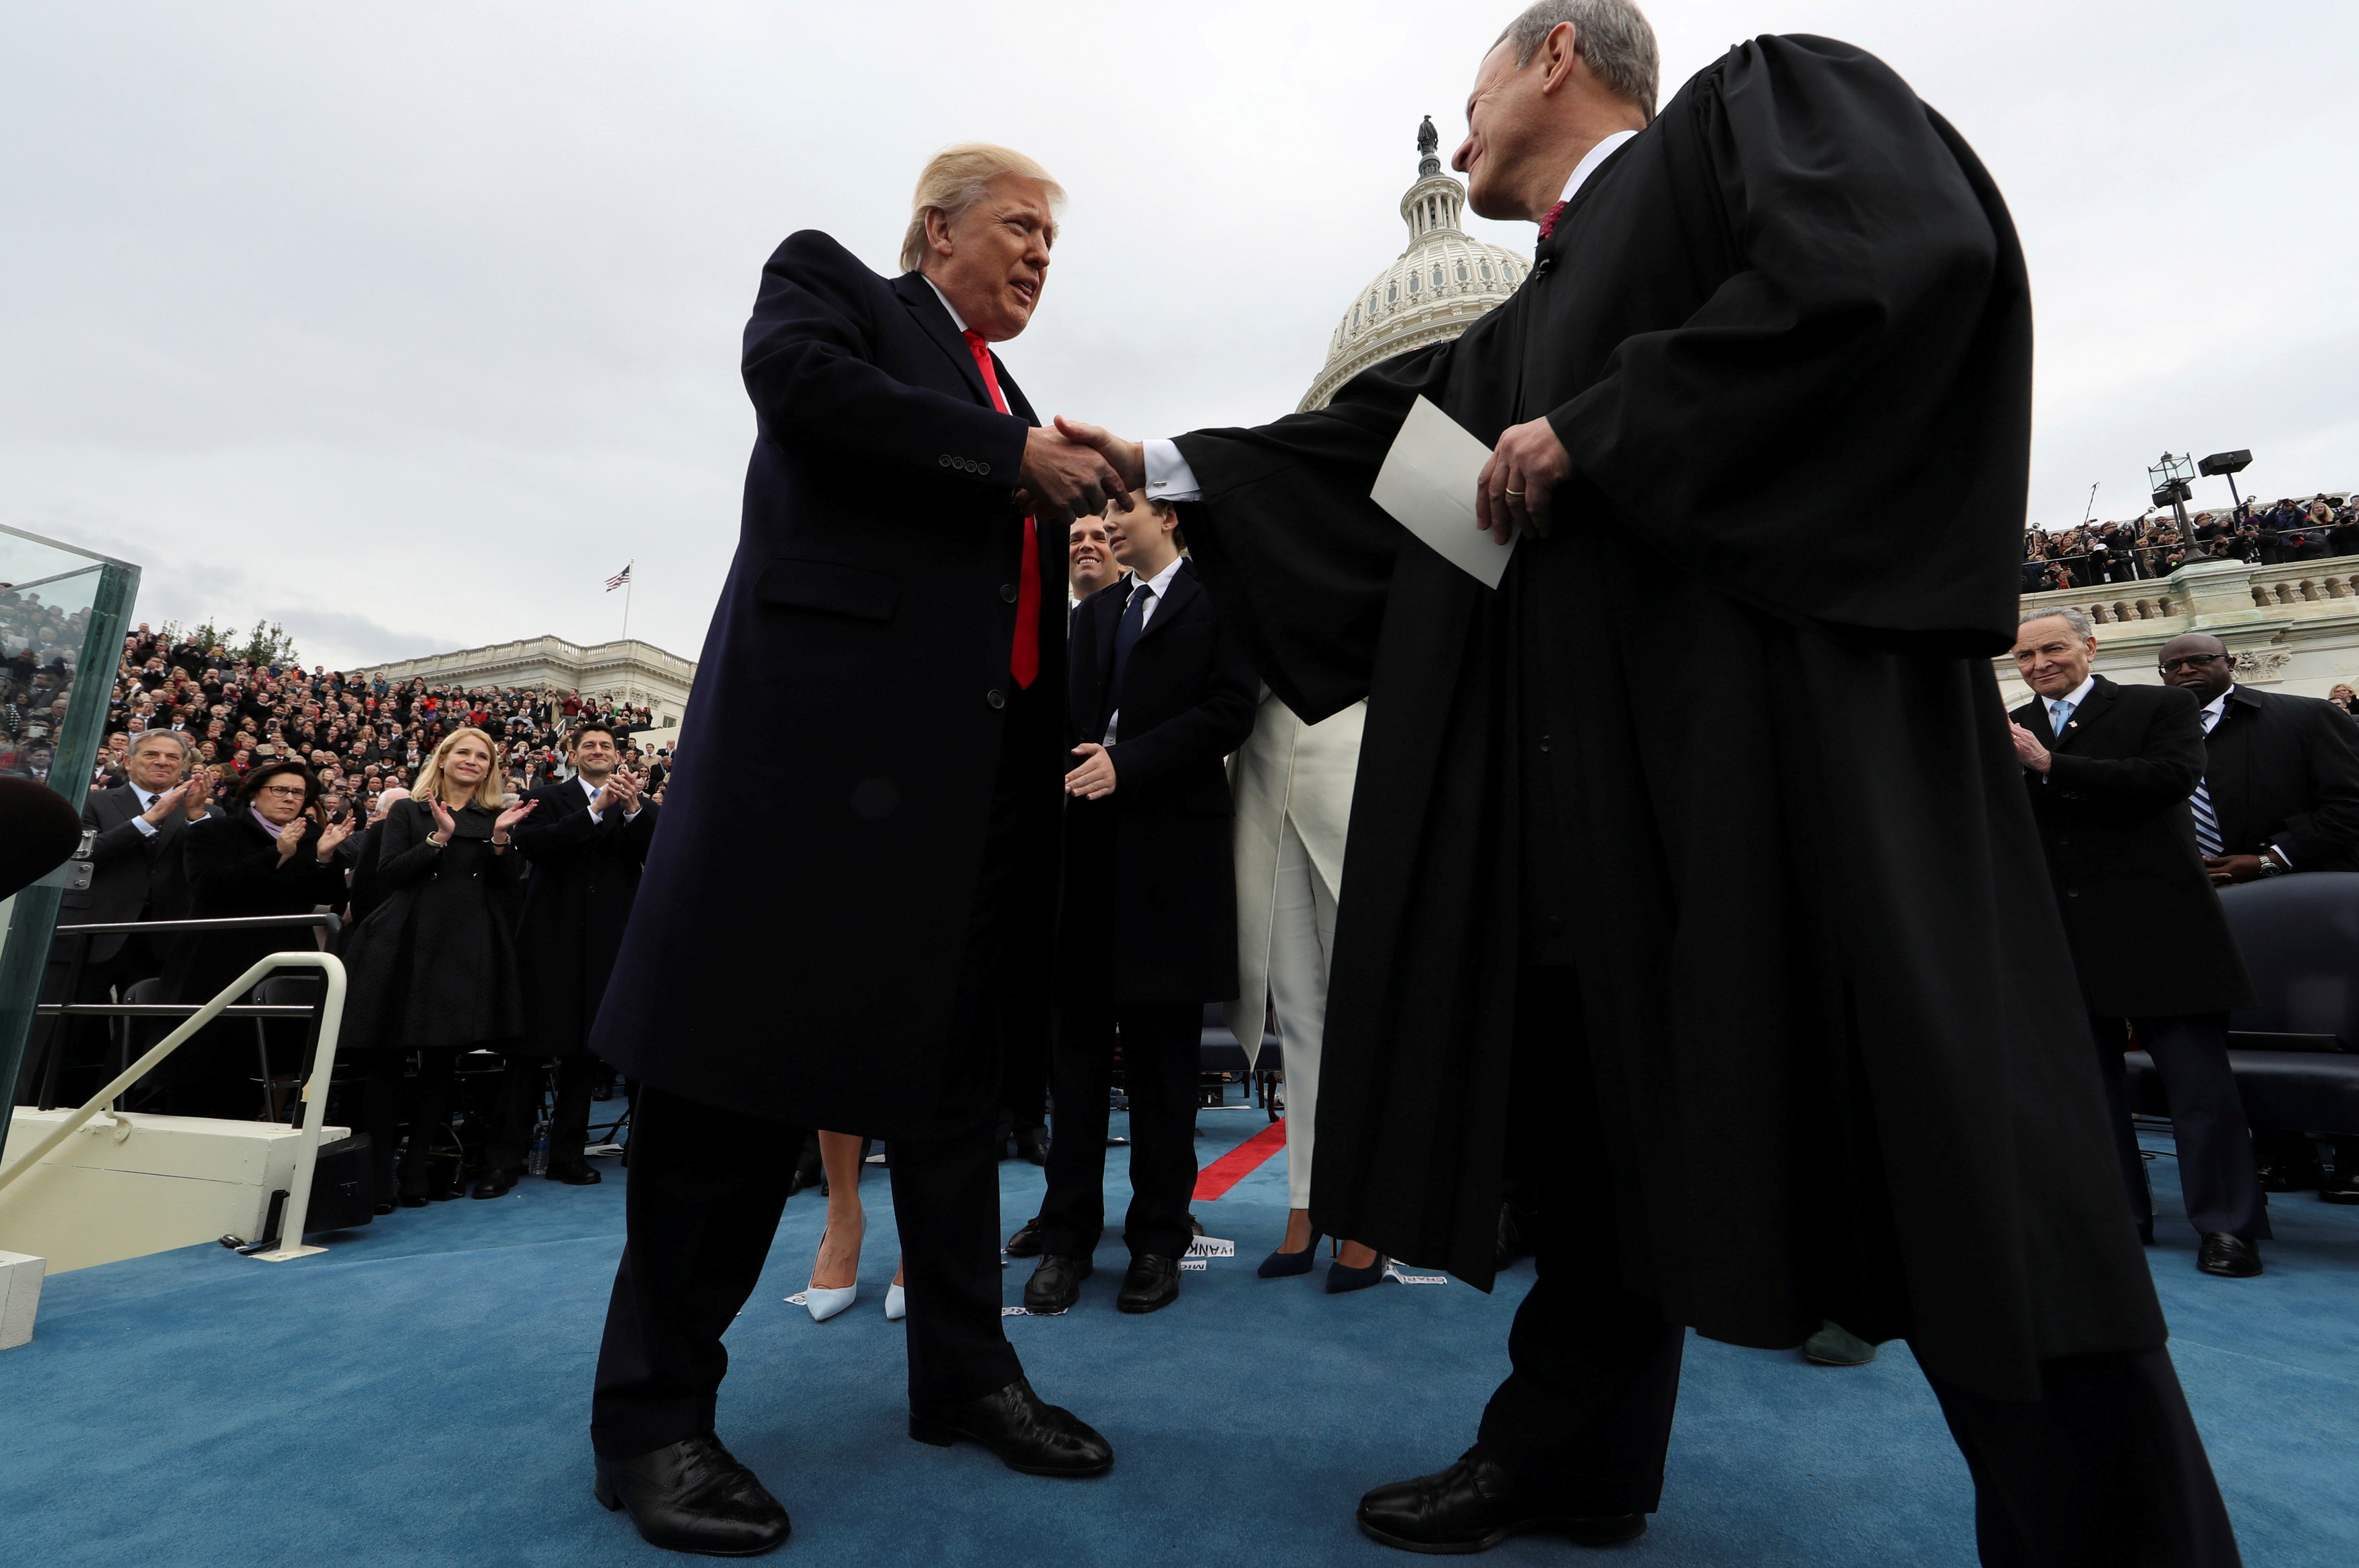 FILE PHOTO: President Donald Trump and U.S. Supreme Court Chief Justice John Roberts shake hands after Trump took the oath of office during inauguration ceremonies swearing in Trump as the 45th president of the United States on the West front of the U.S. Capitol in Washington, D.C., January 20, 2017. REUTERS/Jim Bourg/File Photo